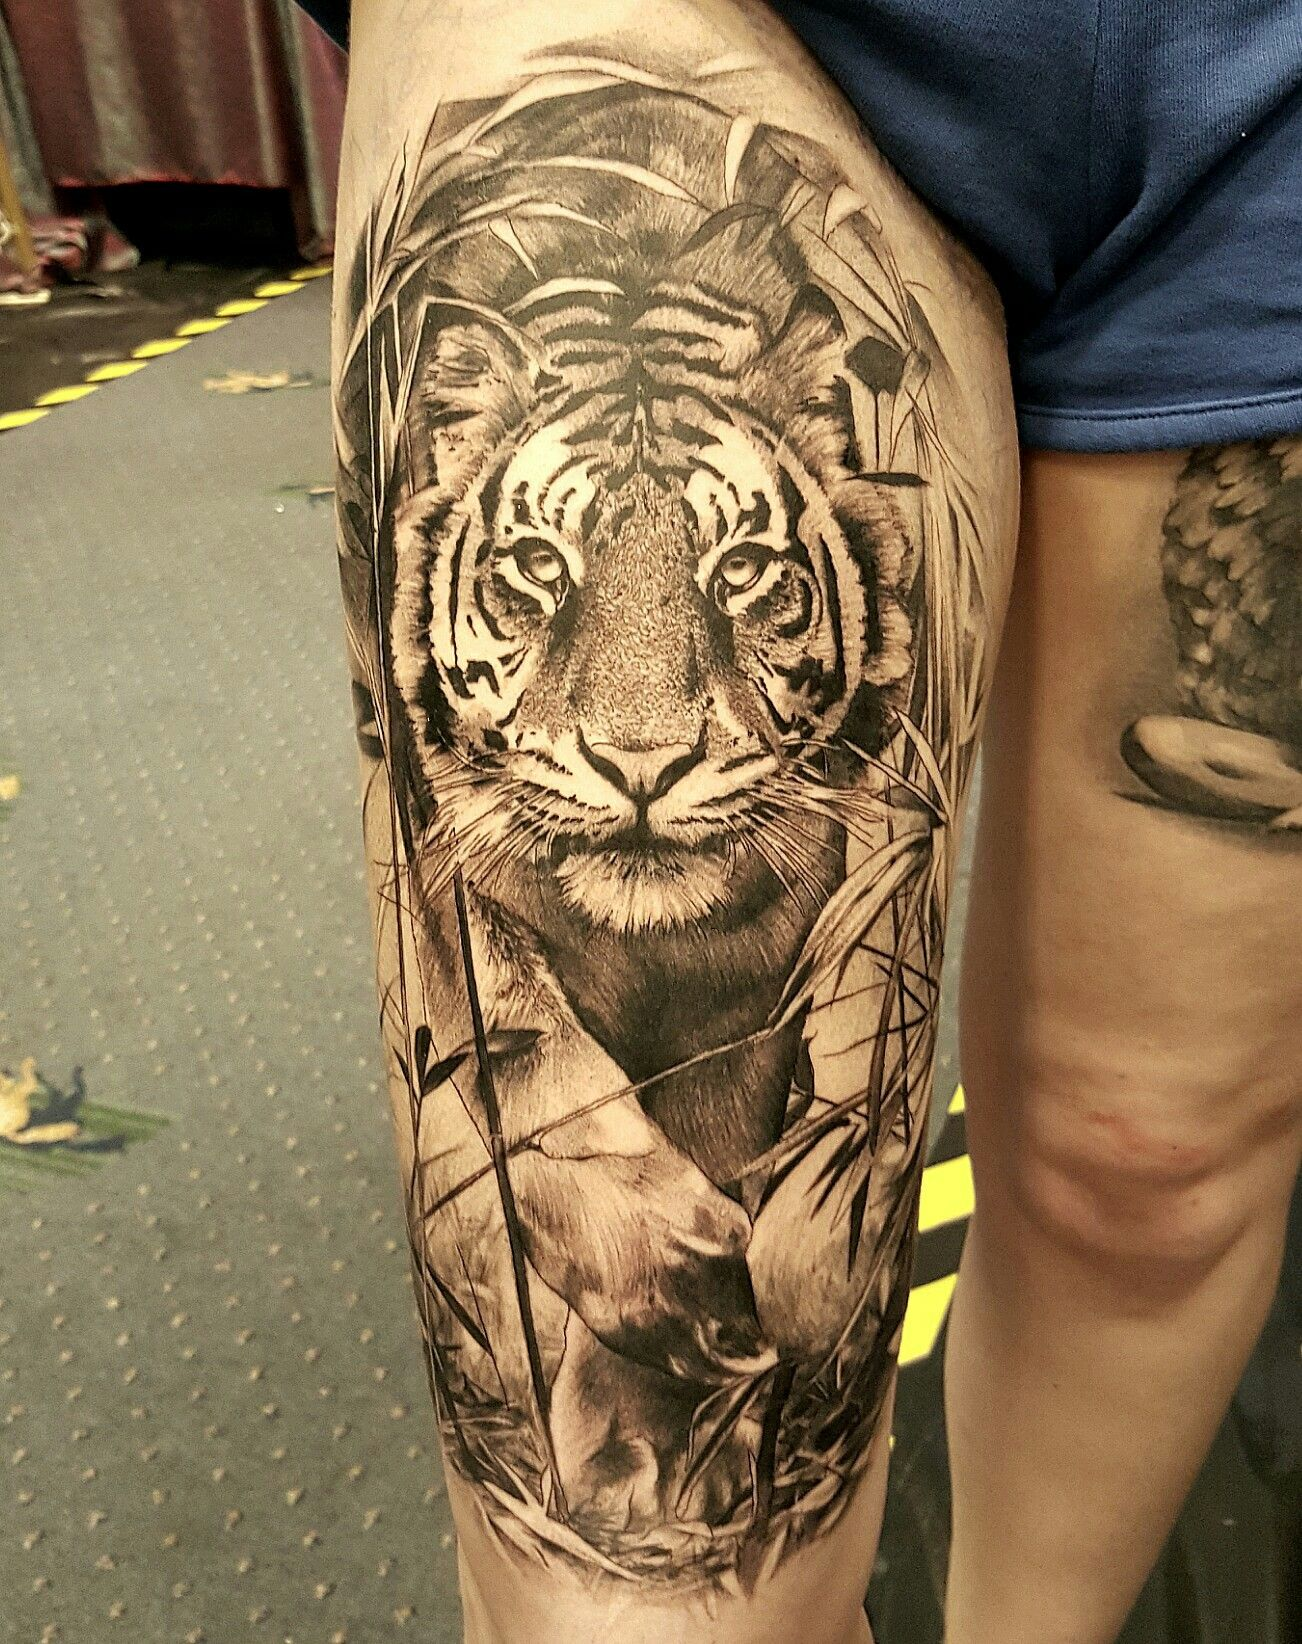 Tiger Tigertattoo Lukesayer With Images Tiger Tattoo Sleeve